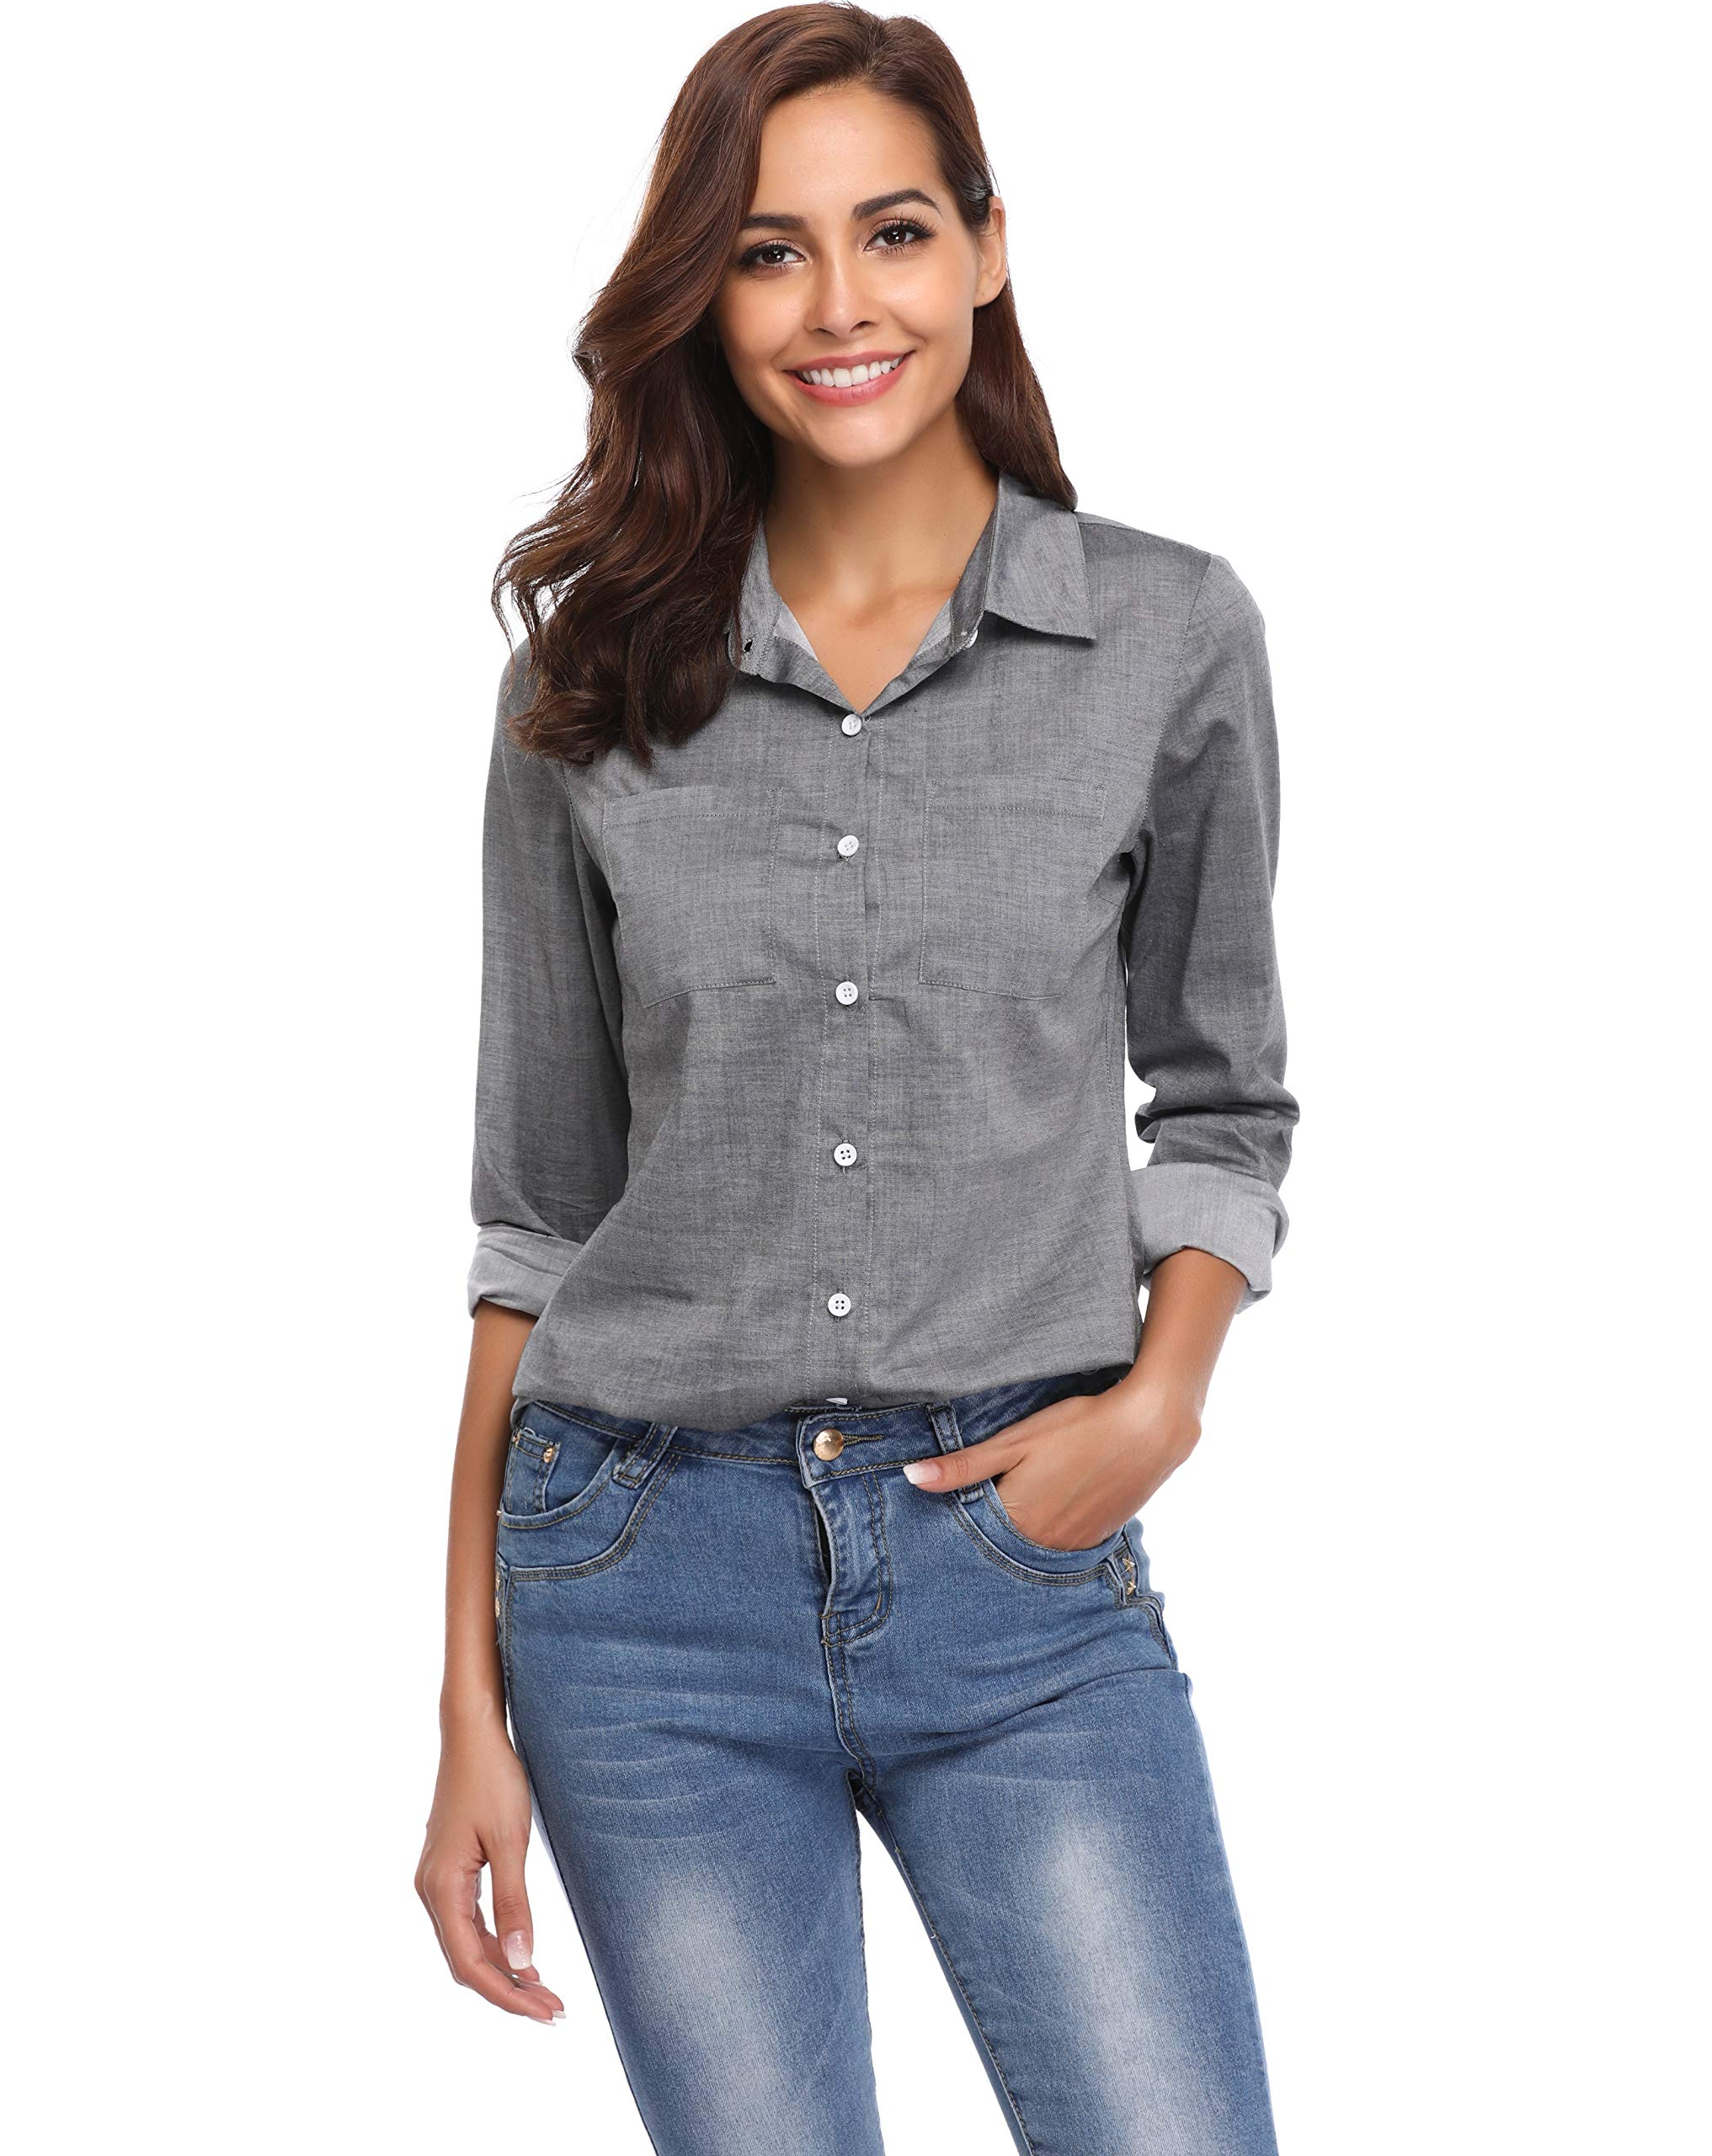 Argstar Women's Chambray Button Down Shirt Long Sleeve Jeans Top,Gray,Large (US 12-14) by Argstar (Image #5)